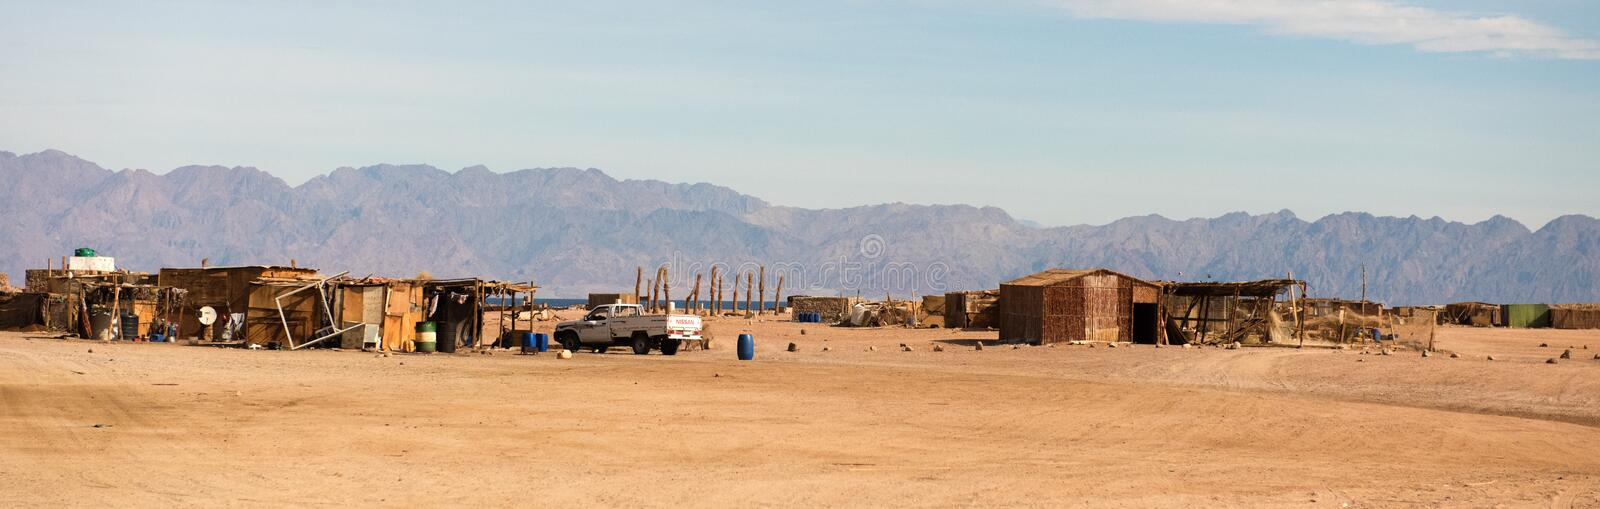 Egyptian landscape, Bedouin village in desert stock image